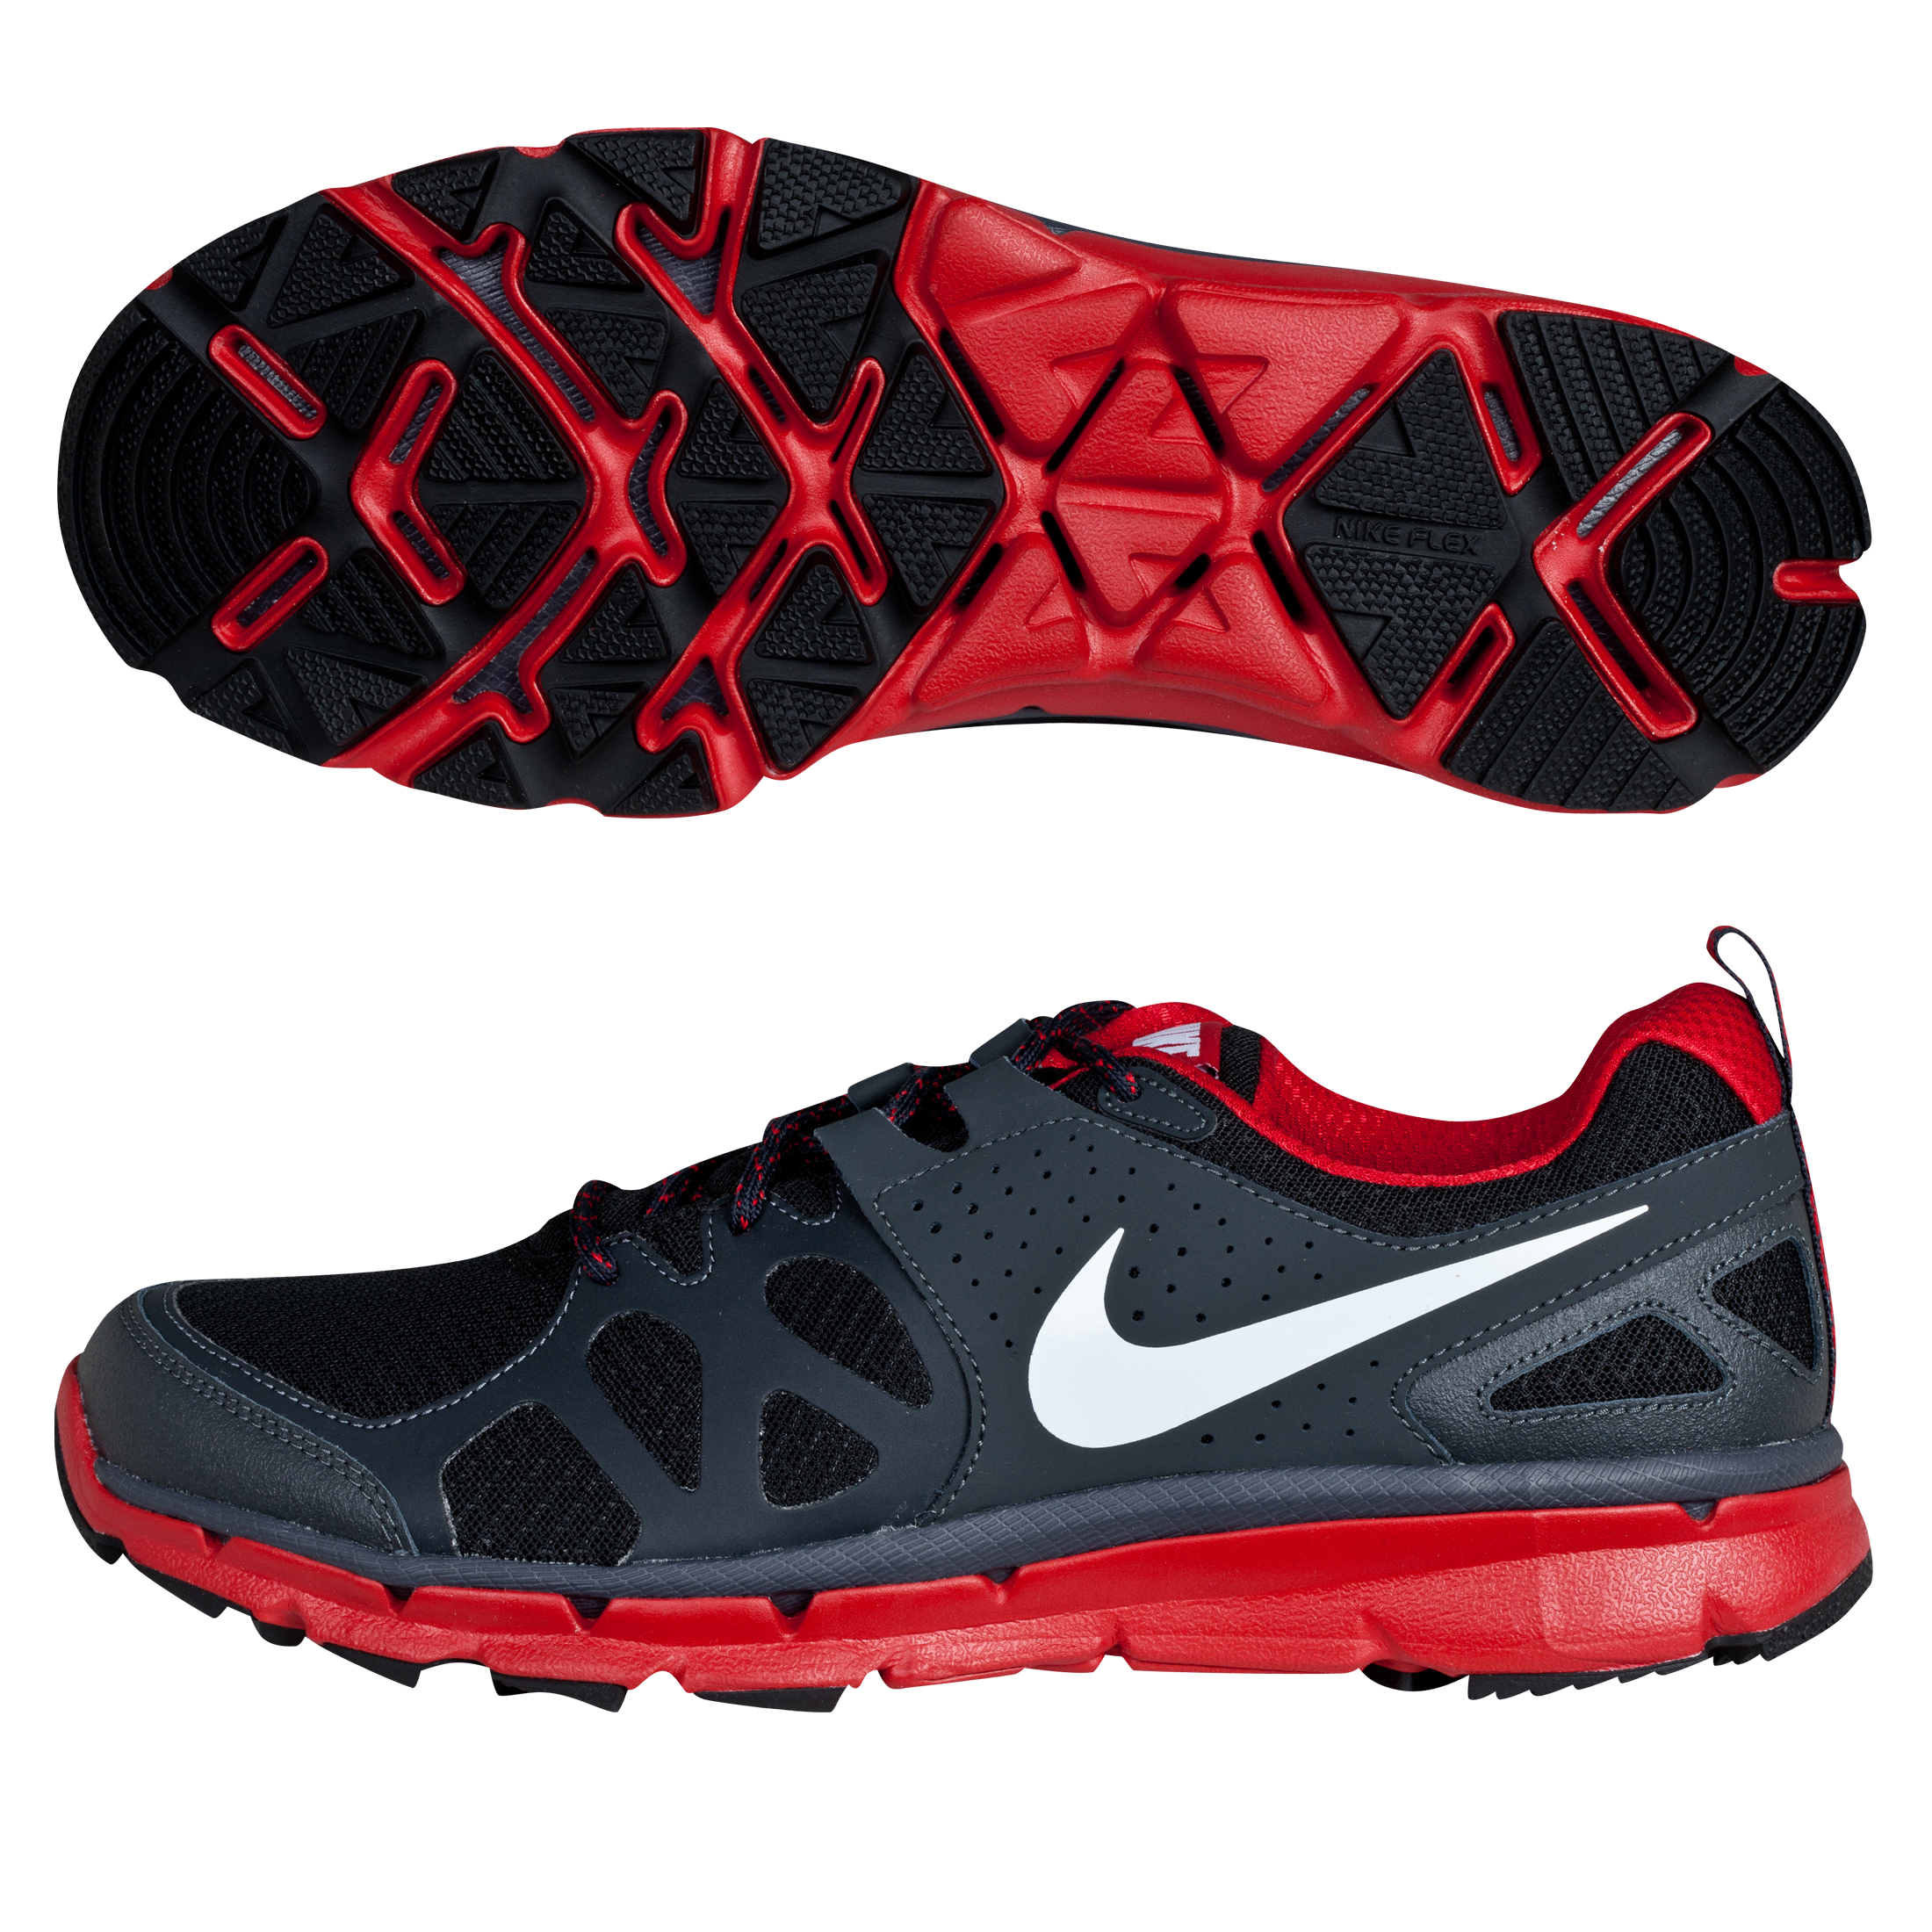 Nike Flex Trail Trainers - Black/Metallic Platinum/Gym Red/Anthracite